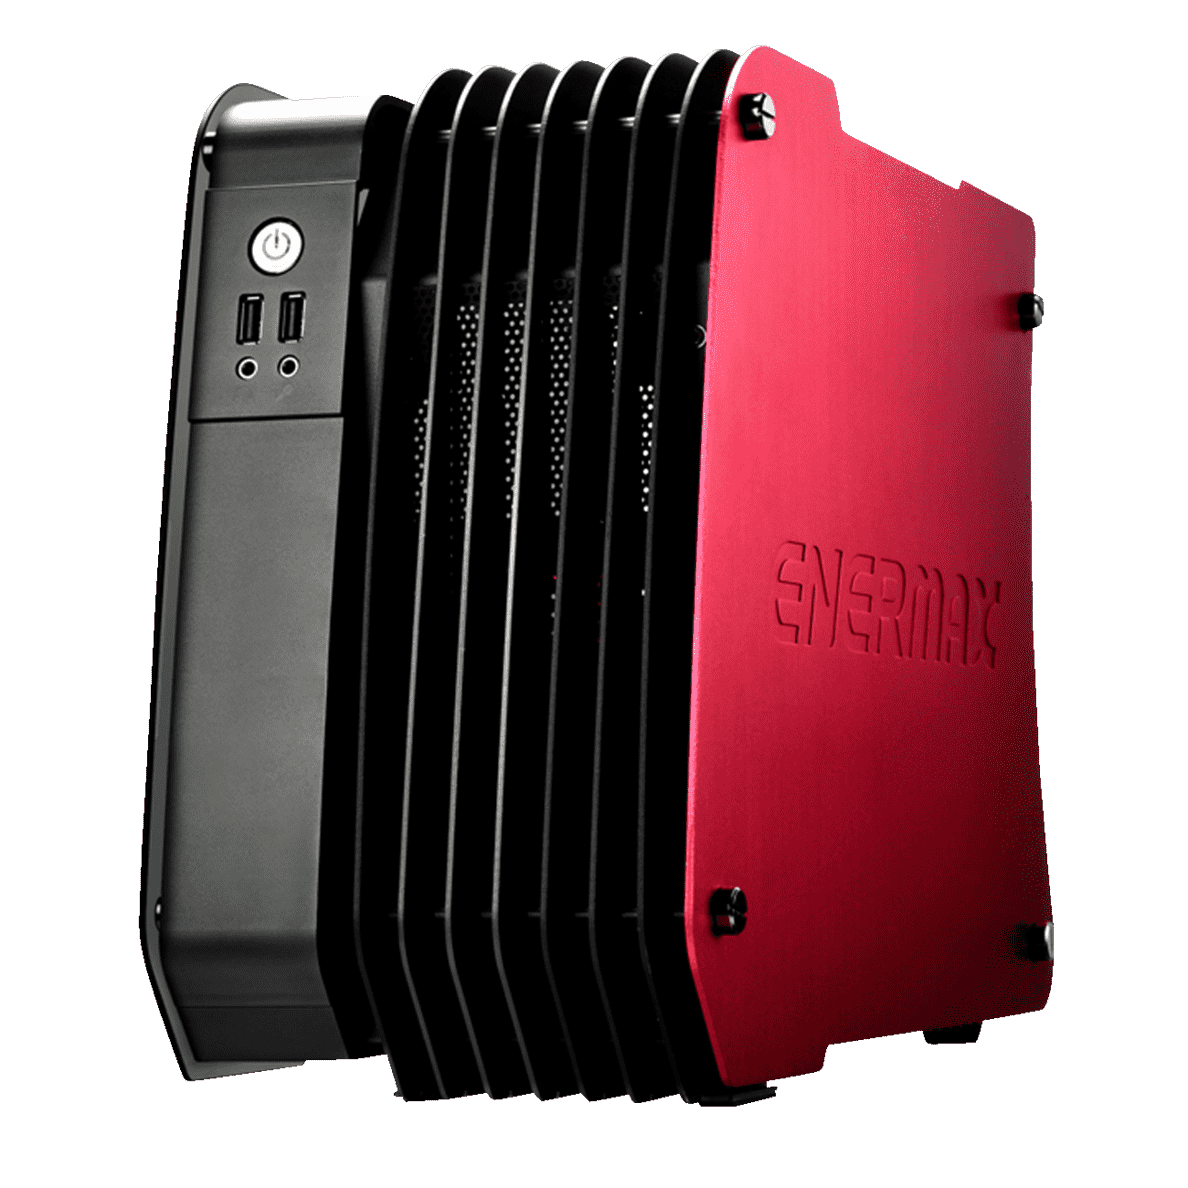 ENERMAX Steelwing Rot PC Gehäuse Dynamic Red